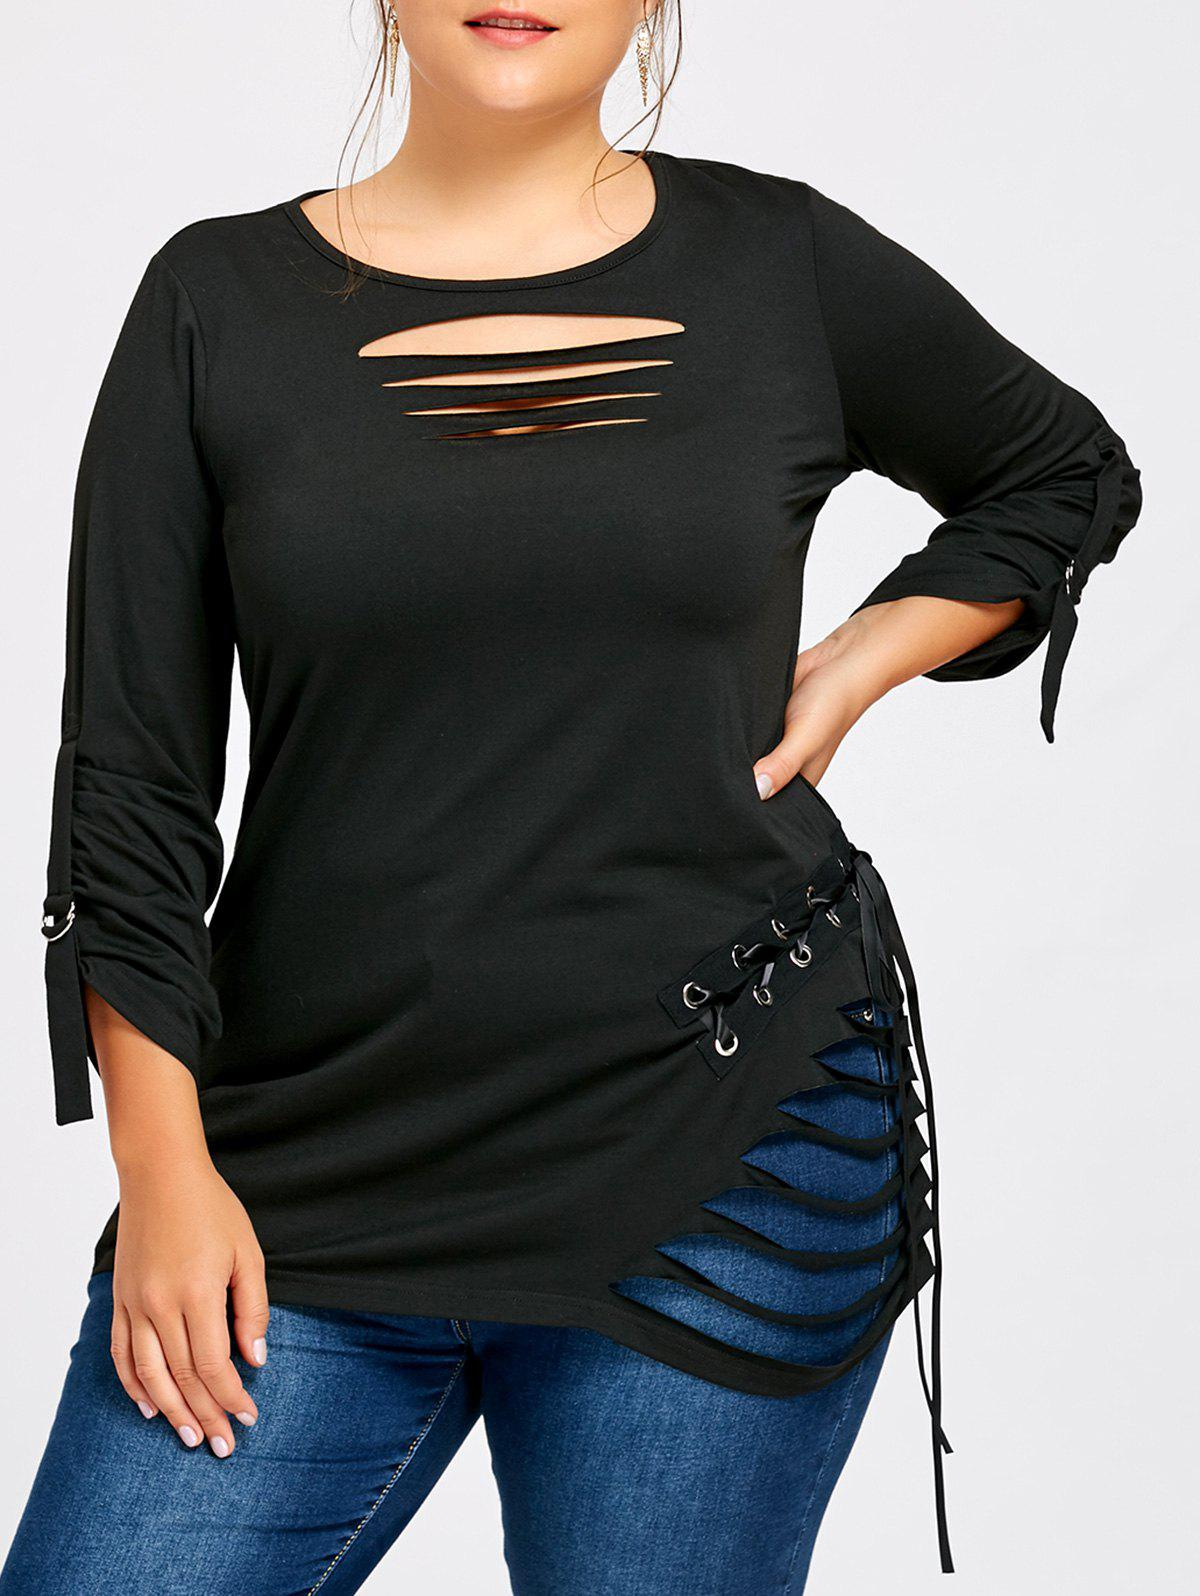 Plus Size Ripped Lace Up TopWOMEN<br><br>Size: 5XL; Color: BLACK; Material: Polyester,Spandex; Shirt Length: Long; Sleeve Length: Full; Collar: Round Neck; Style: Fashion; Season: Fall,Spring; Pattern Type: Solid; Weight: 0.3100kg; Package Contents: 1 x Top;